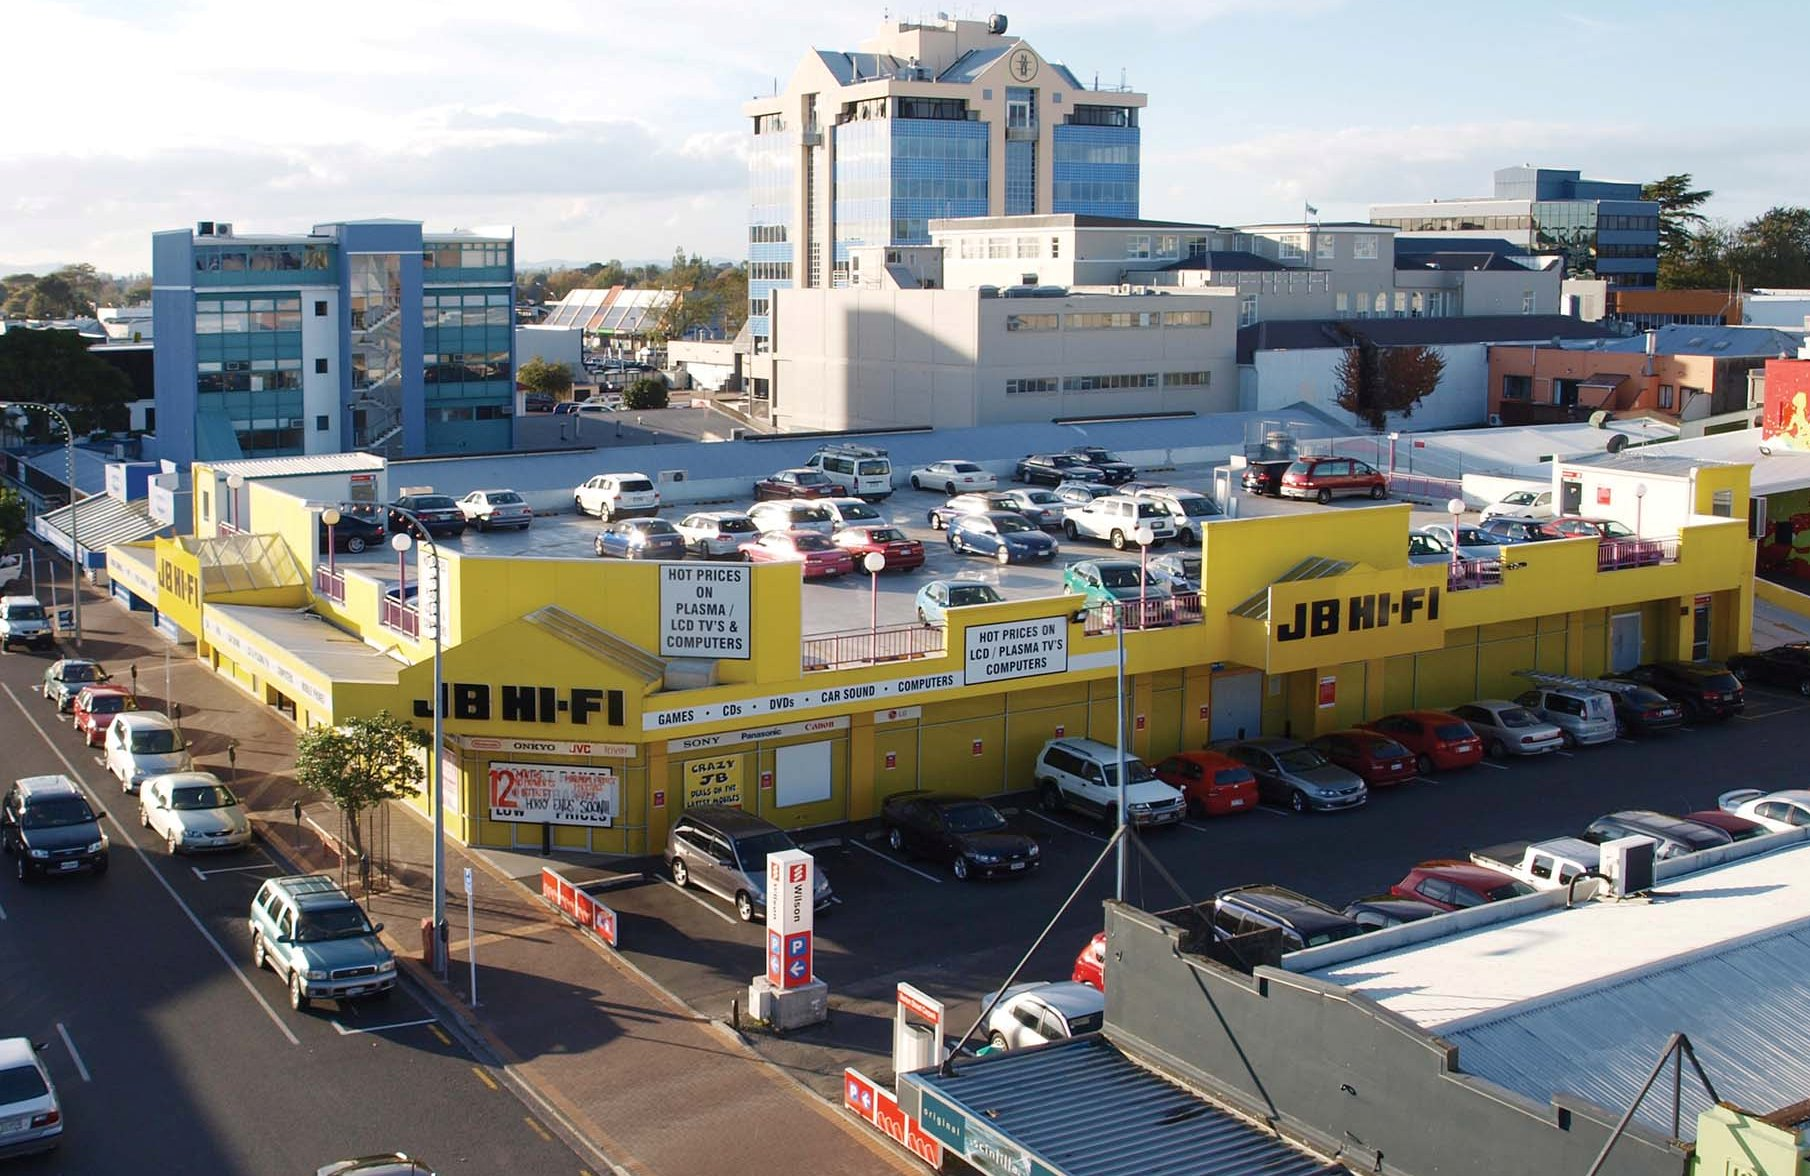 Photo of JB Hi-Fi and Wilson Parking Building, 308 Barton Street, Hamilton